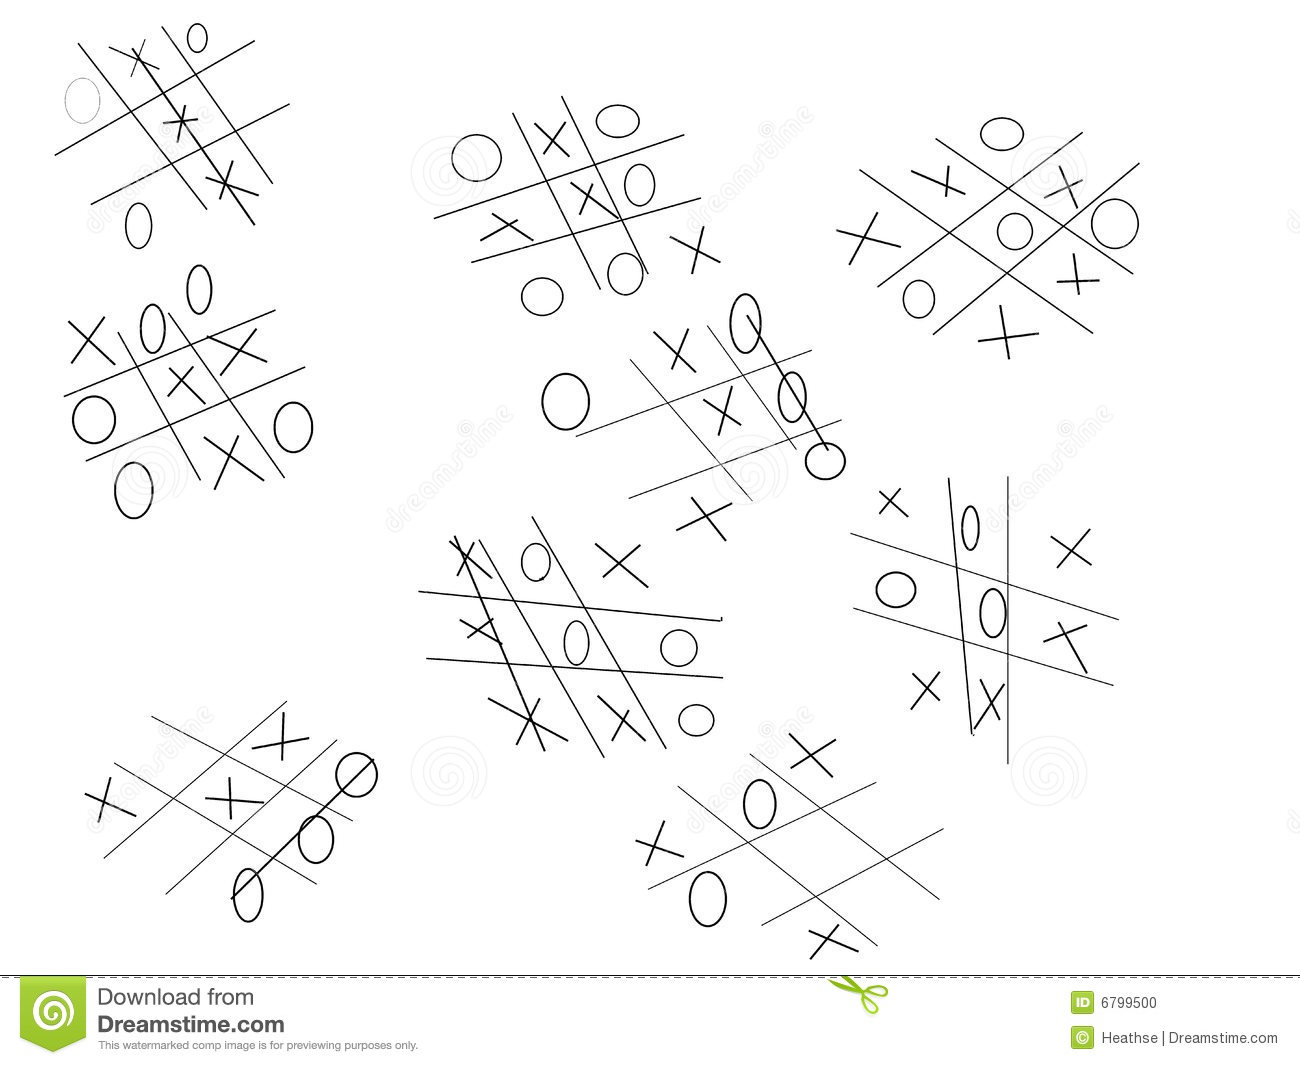 Noughts and crosses game stock illustration. Illustration